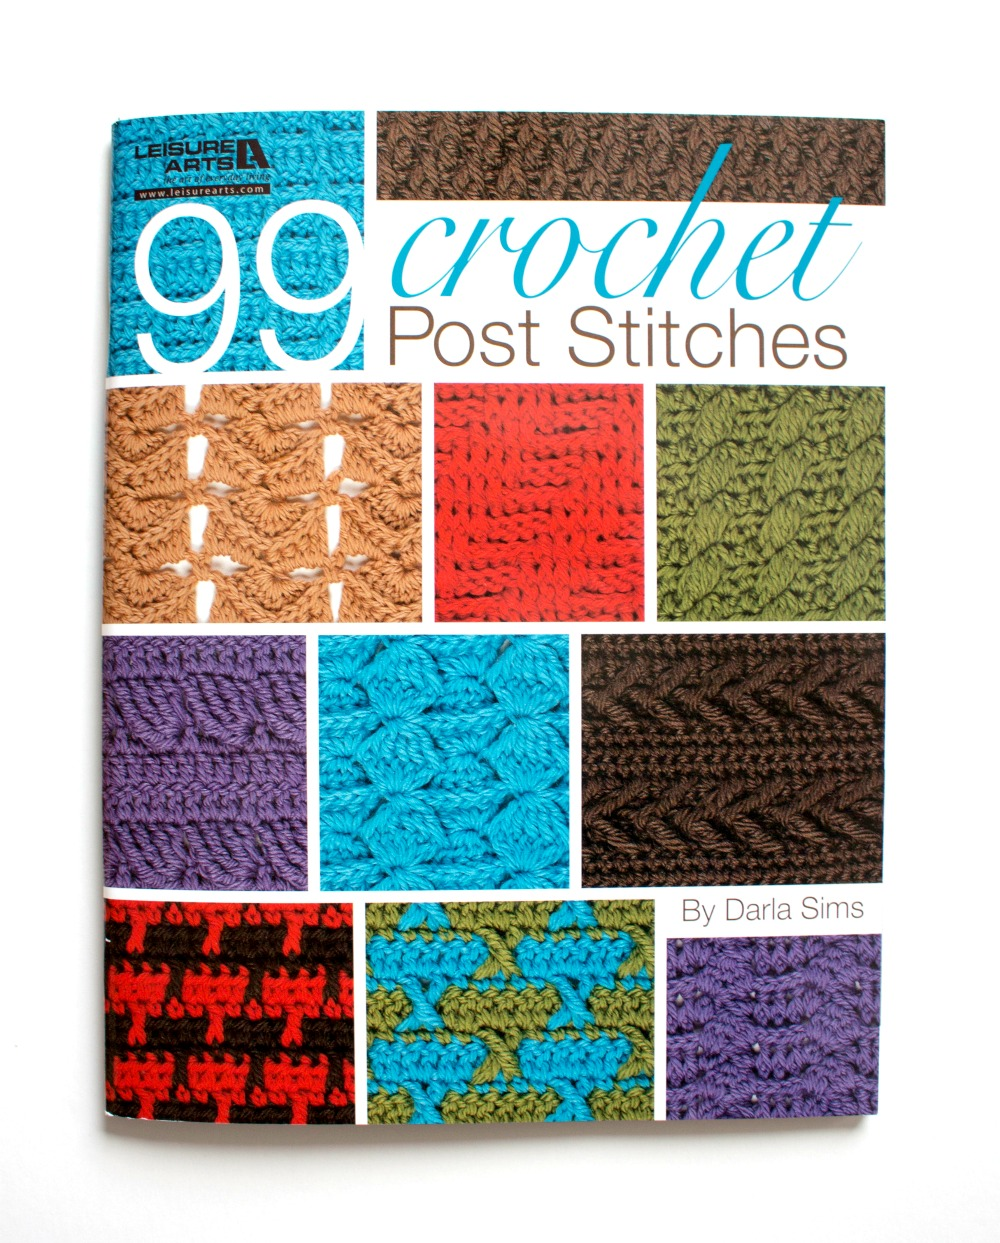 99 Crochet Post Stitches by Leisure Arts Inc - Book Review on Pattern-Paradise.com #patternparadisecrochet #crochet #poststitches